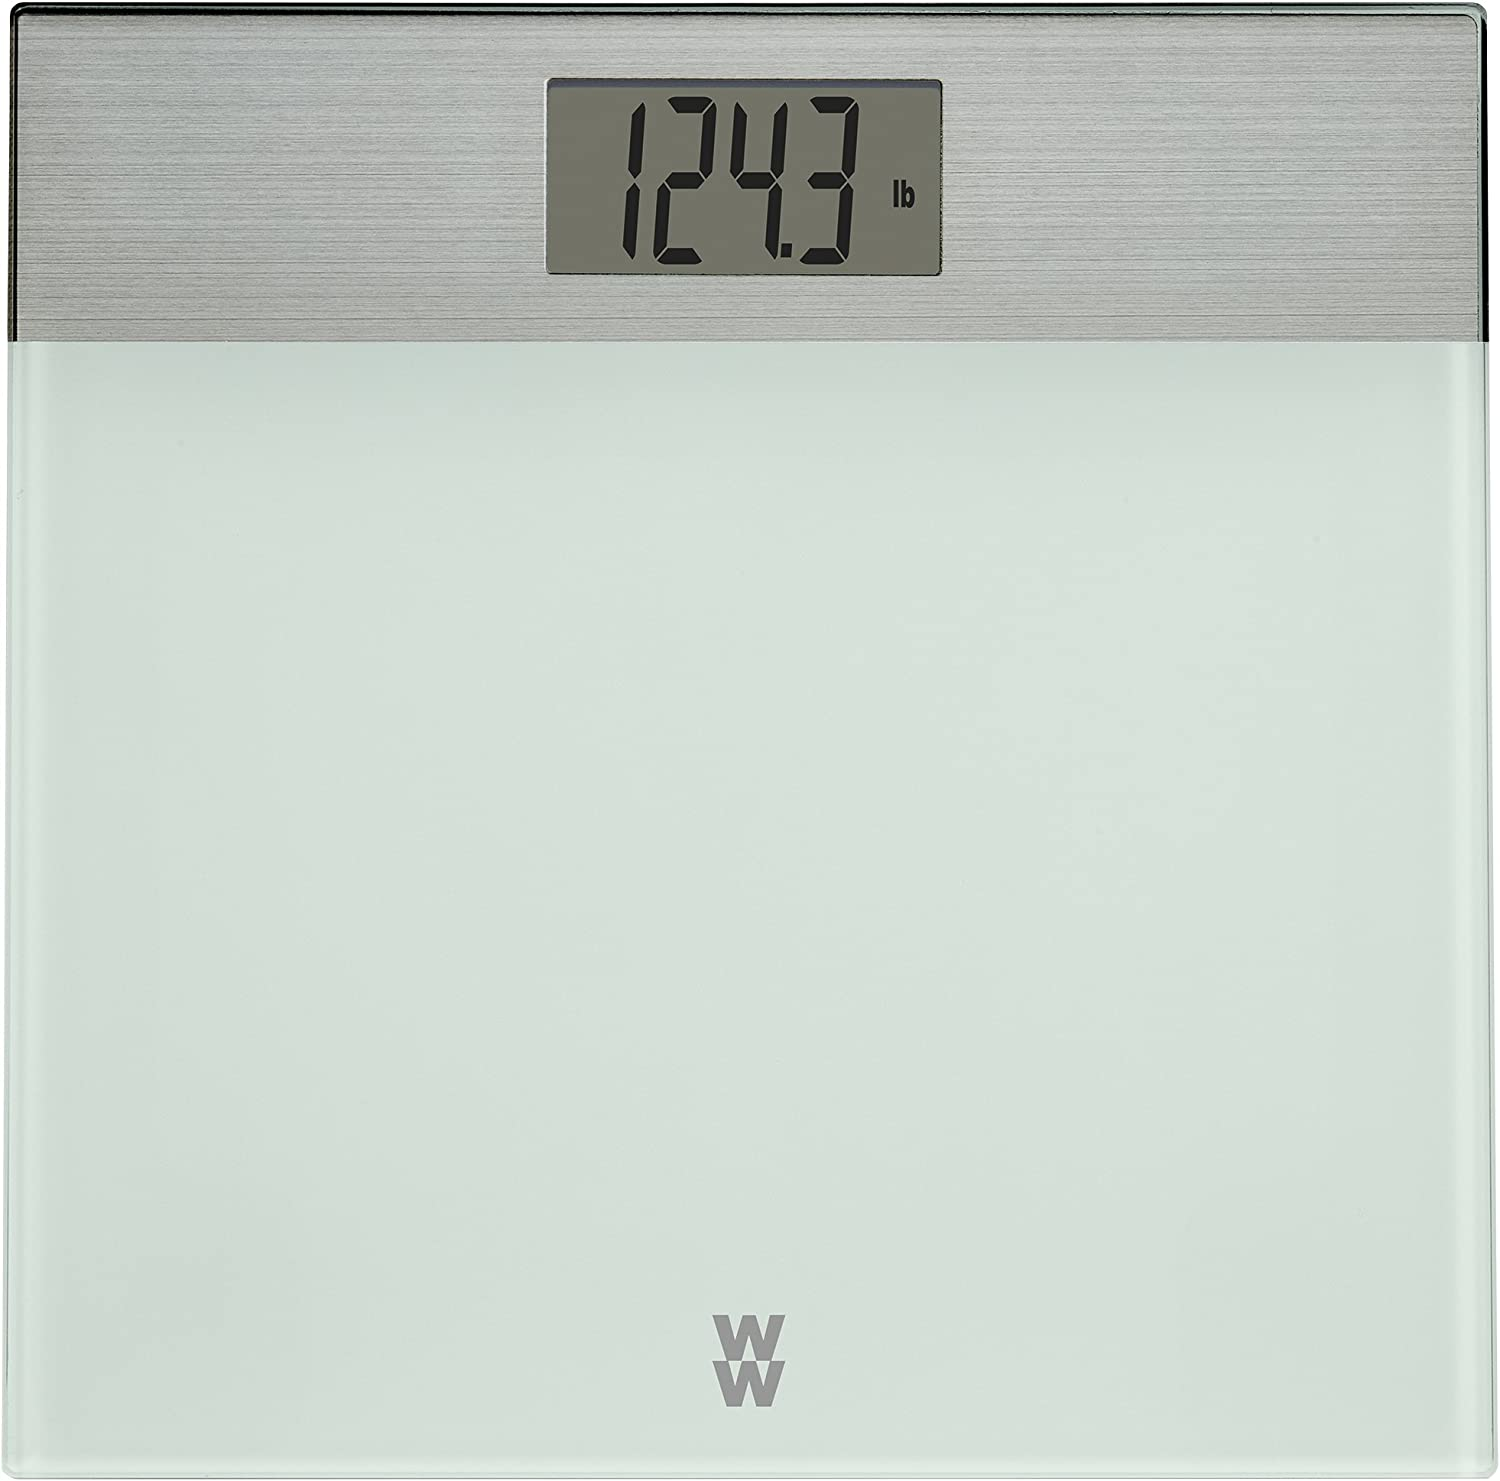 WW Scales by Conair Digital Weight Painted Glass and Brushed Stainless Steel Bathroom Scale, 400 Lbs. Capacity